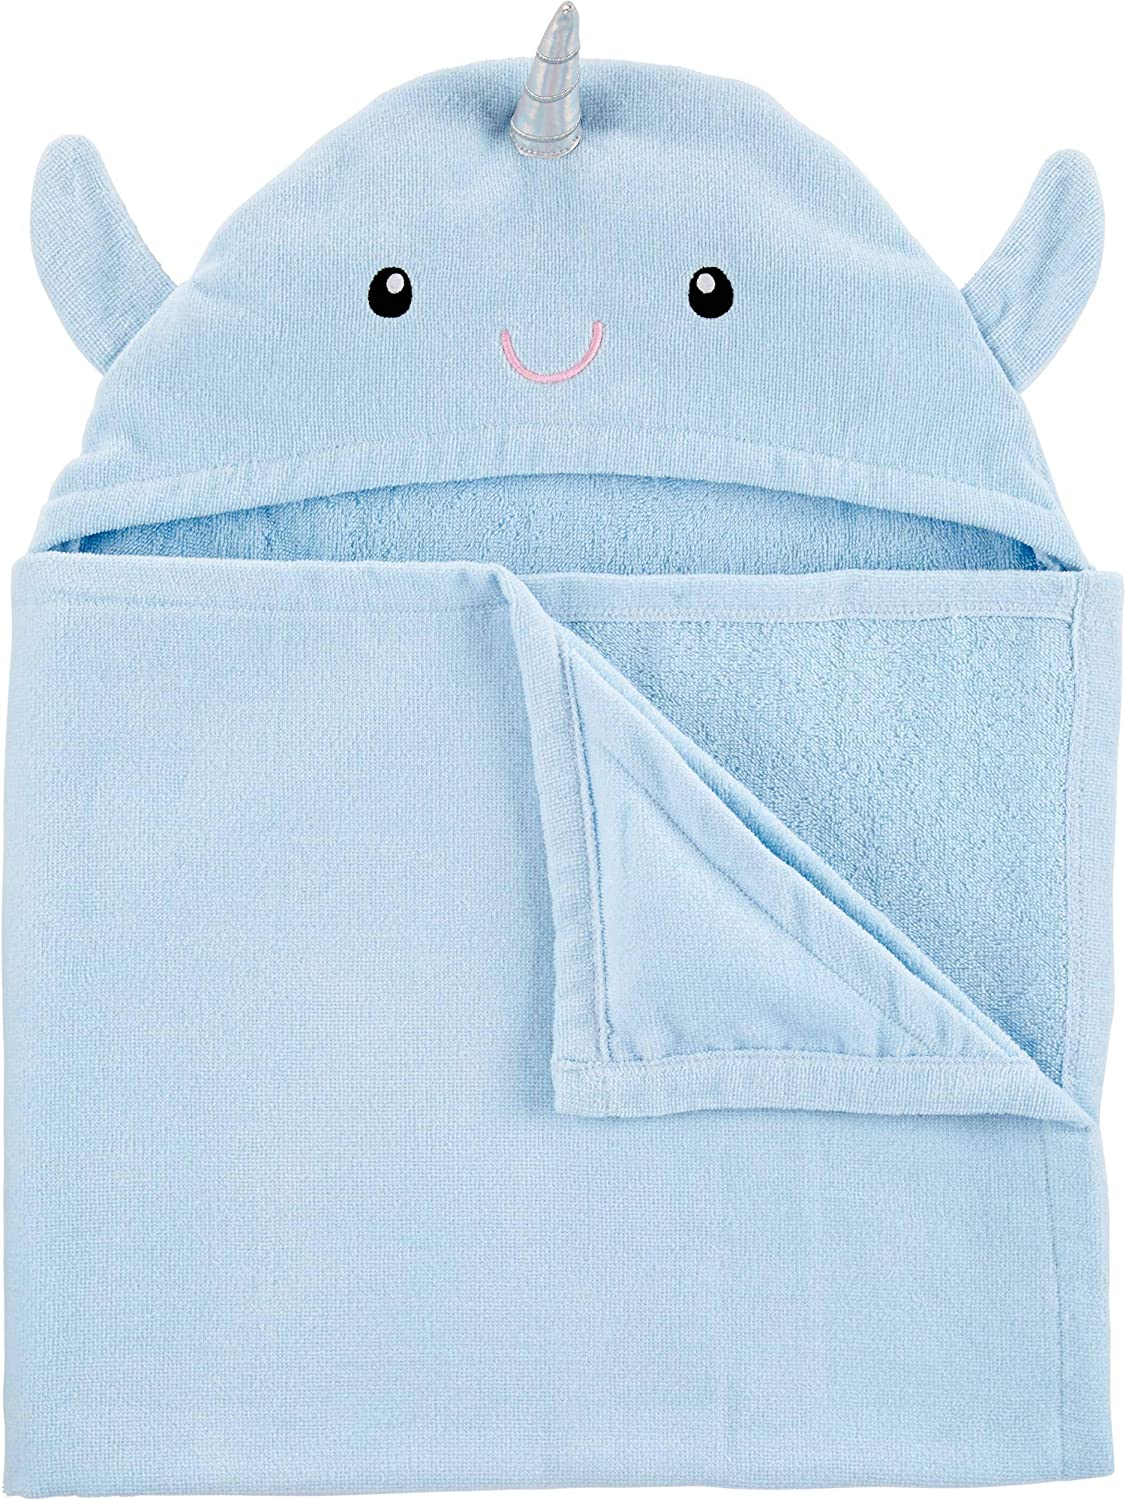 Yellow Carters Baby Hooded Towel